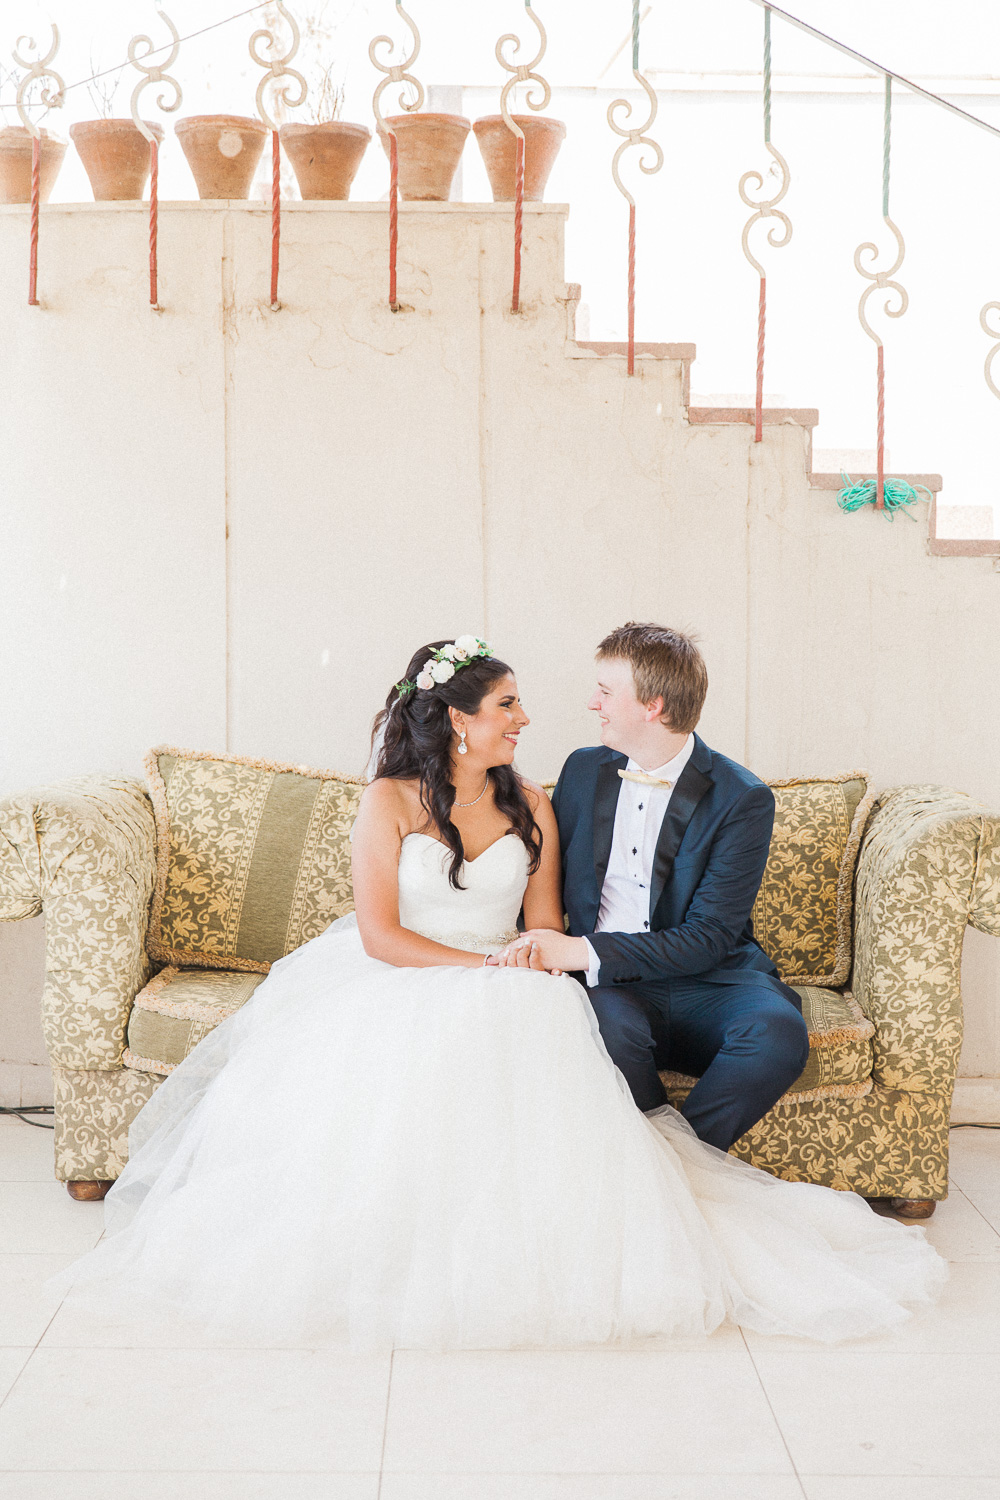 Bride and groom sitting on a sofa during their destination wedding in Cairo, Egypt